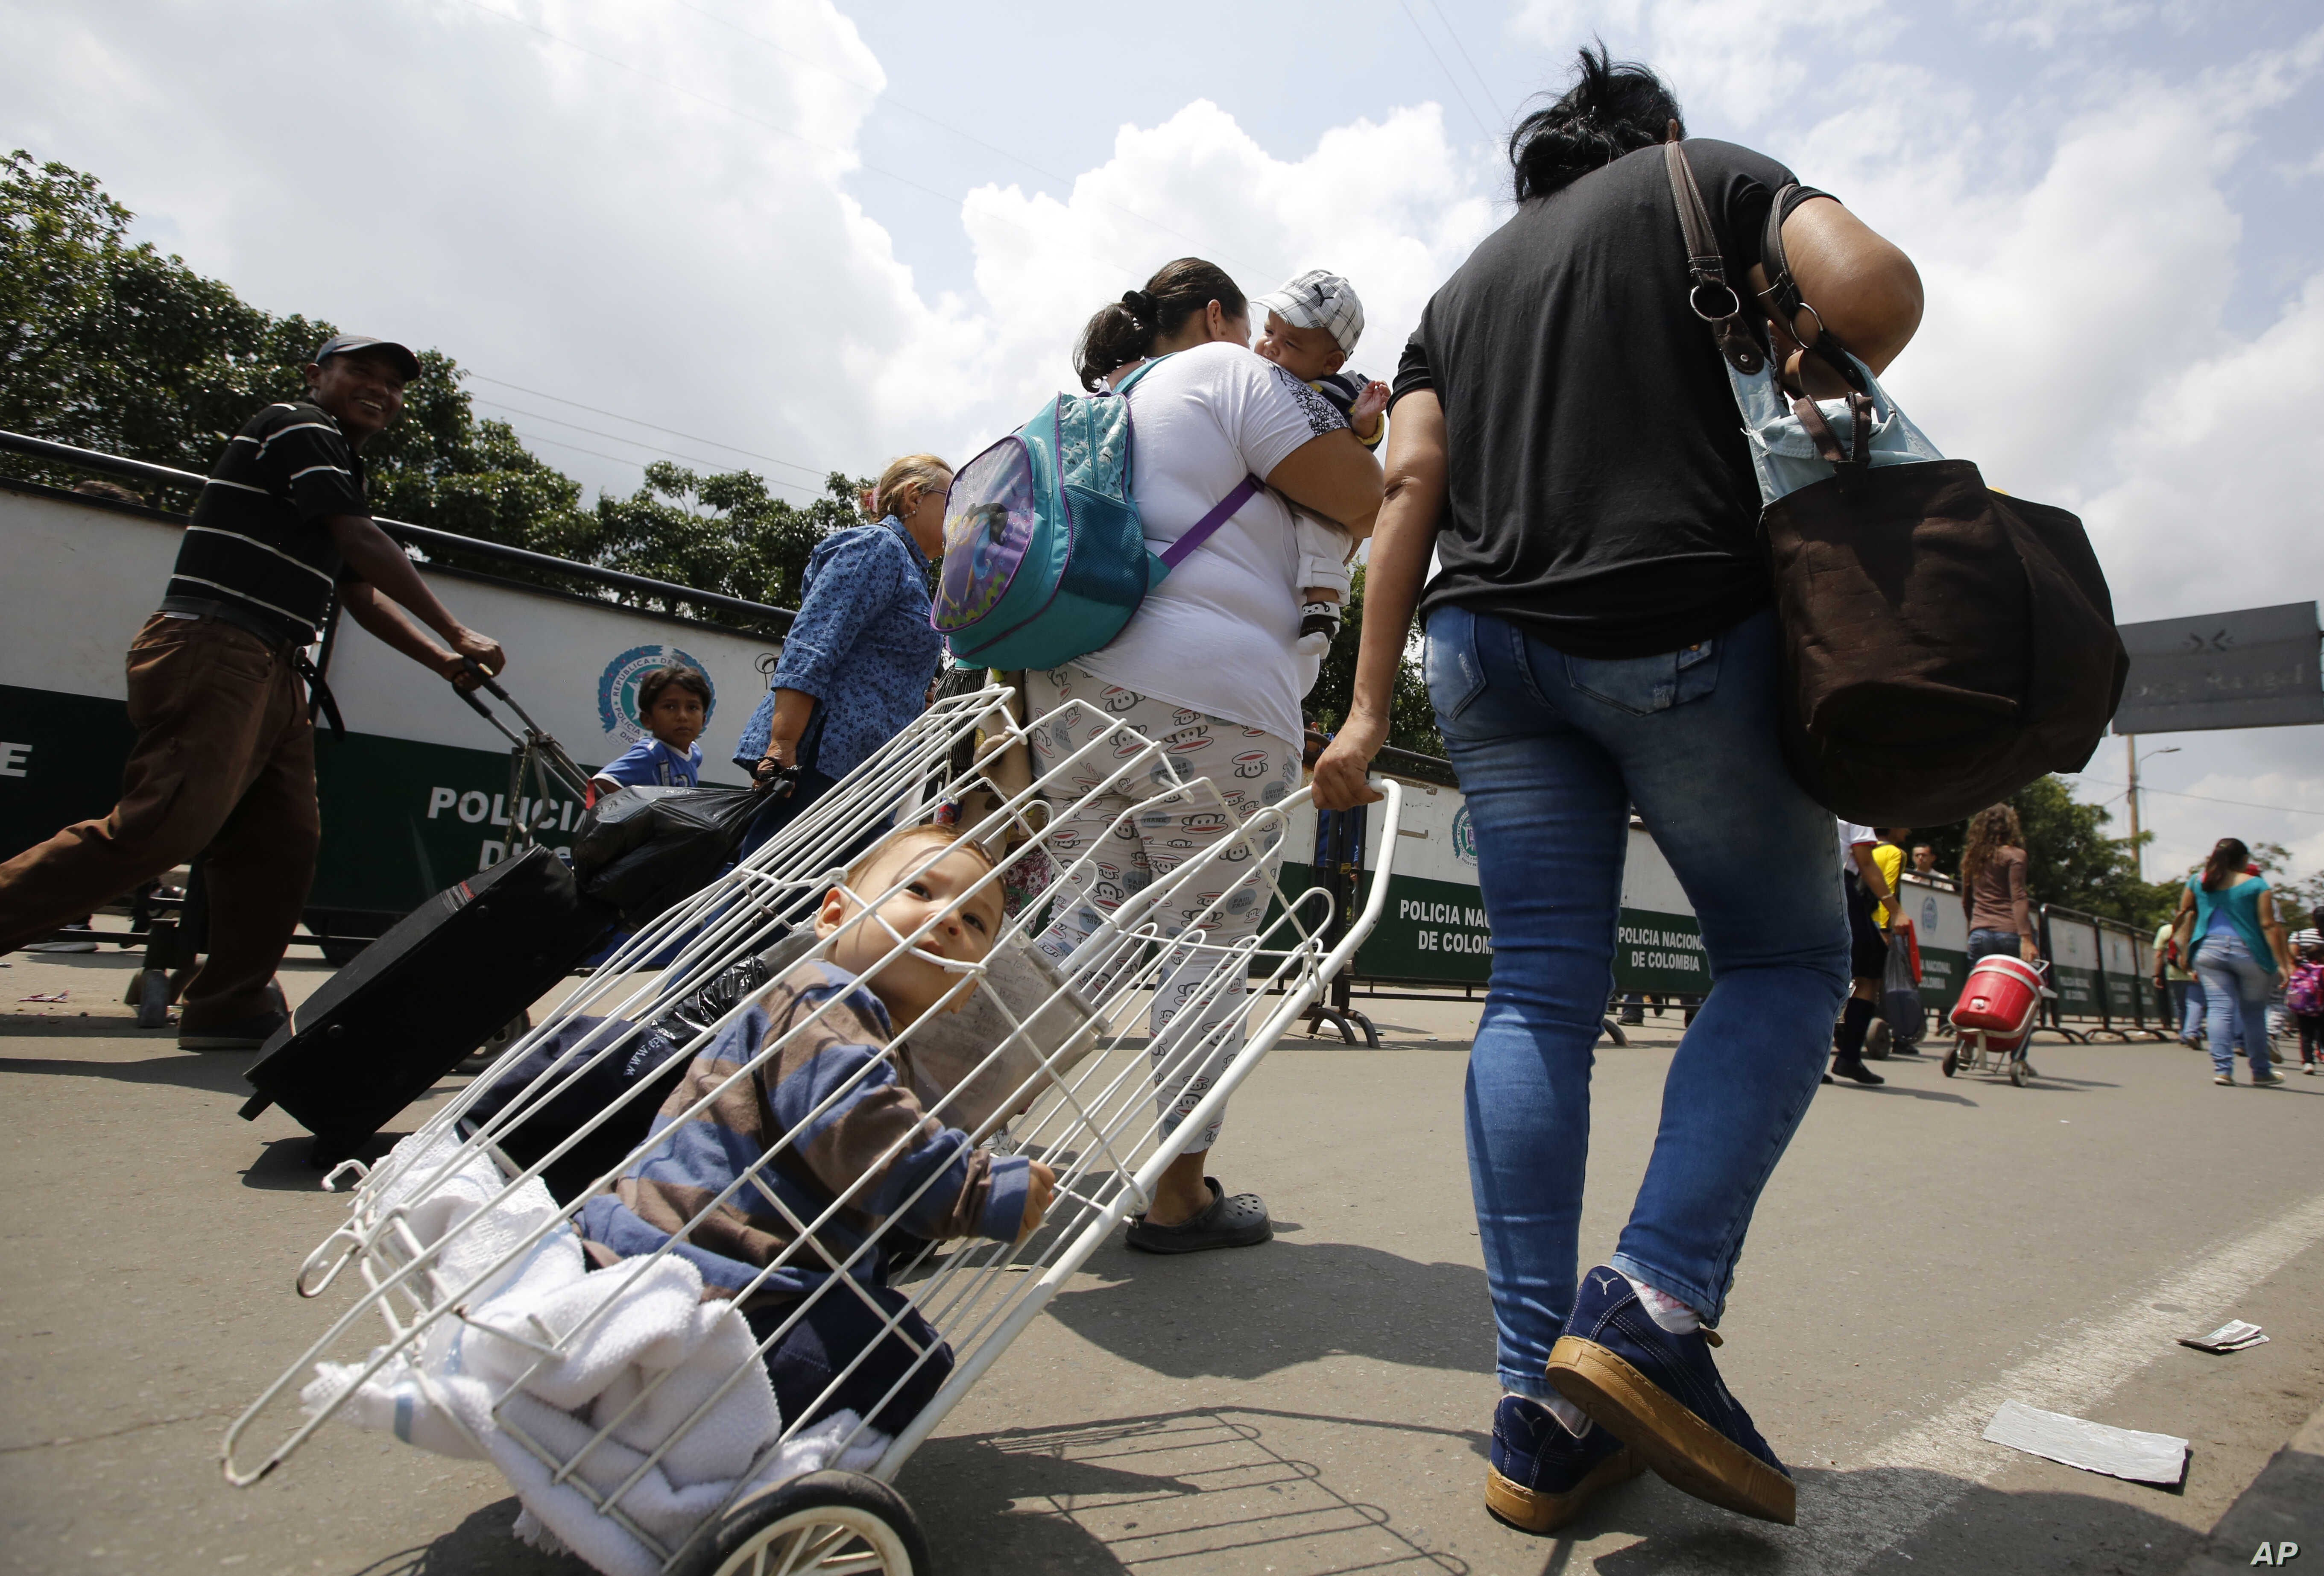 Venezuelan citizens arrive at the La Parada neighborhood of Cucuta, Colombia, on the border with Venezuela, Feb. 23, 2018.